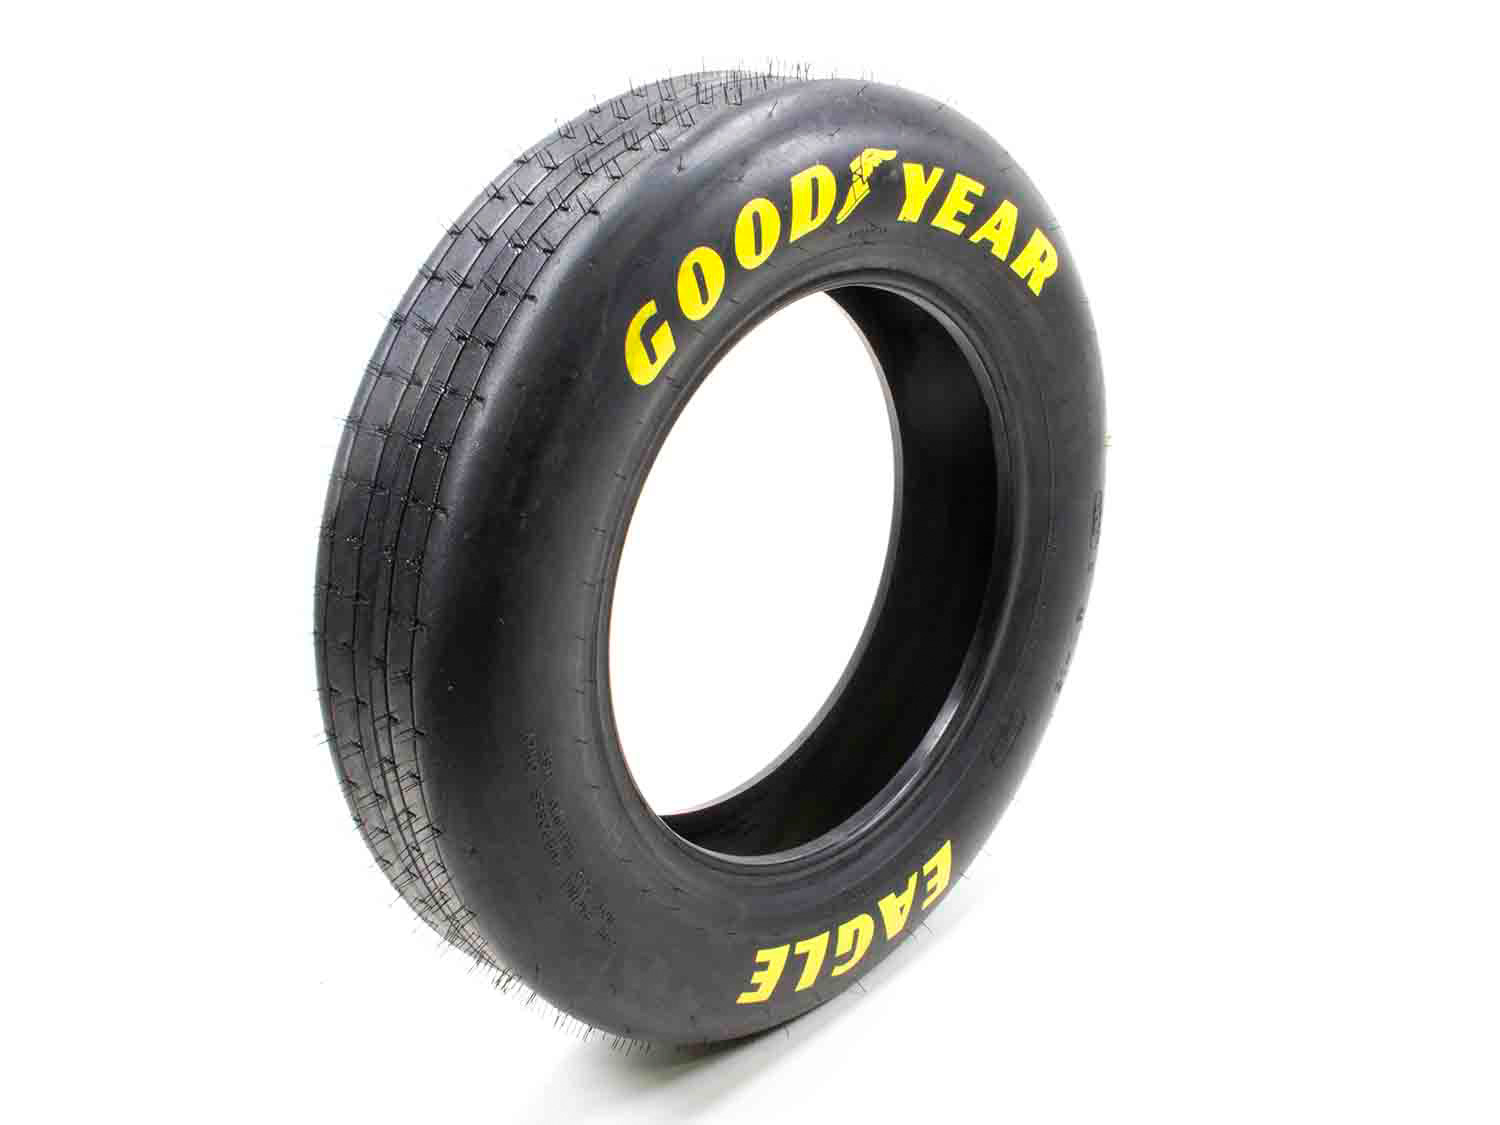 Goodyear D1962 Tire, Drag Front, Front Runner, 24.0 x 5.0-15, Bias Ply, Hard Compound, Yellow Letter Sidewall, Each